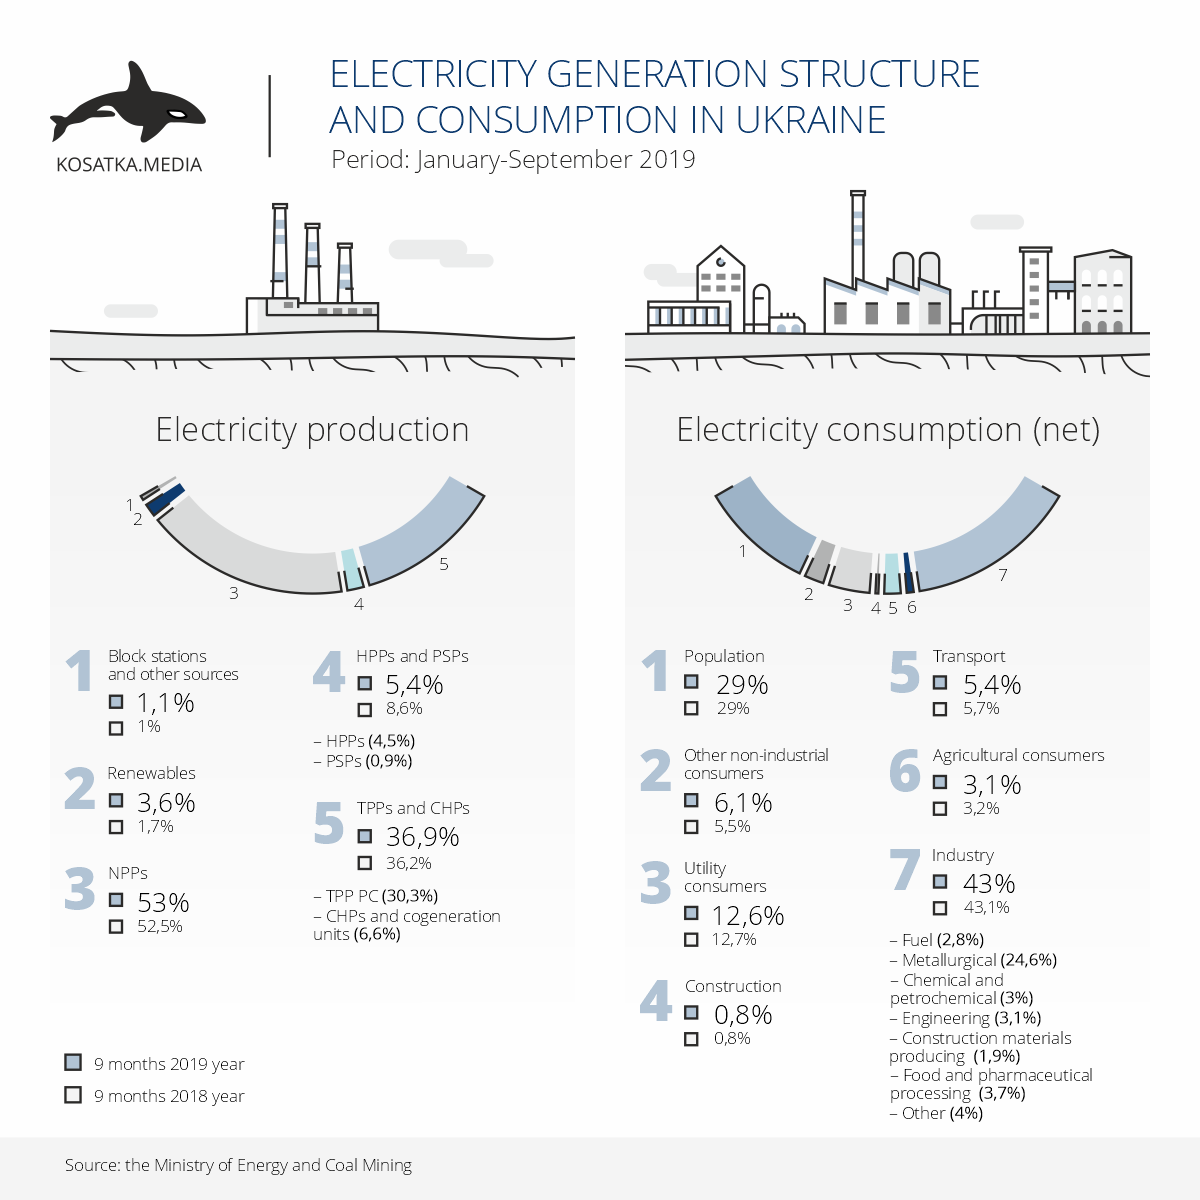 Electricity generation structure, electricity consumpsion structure